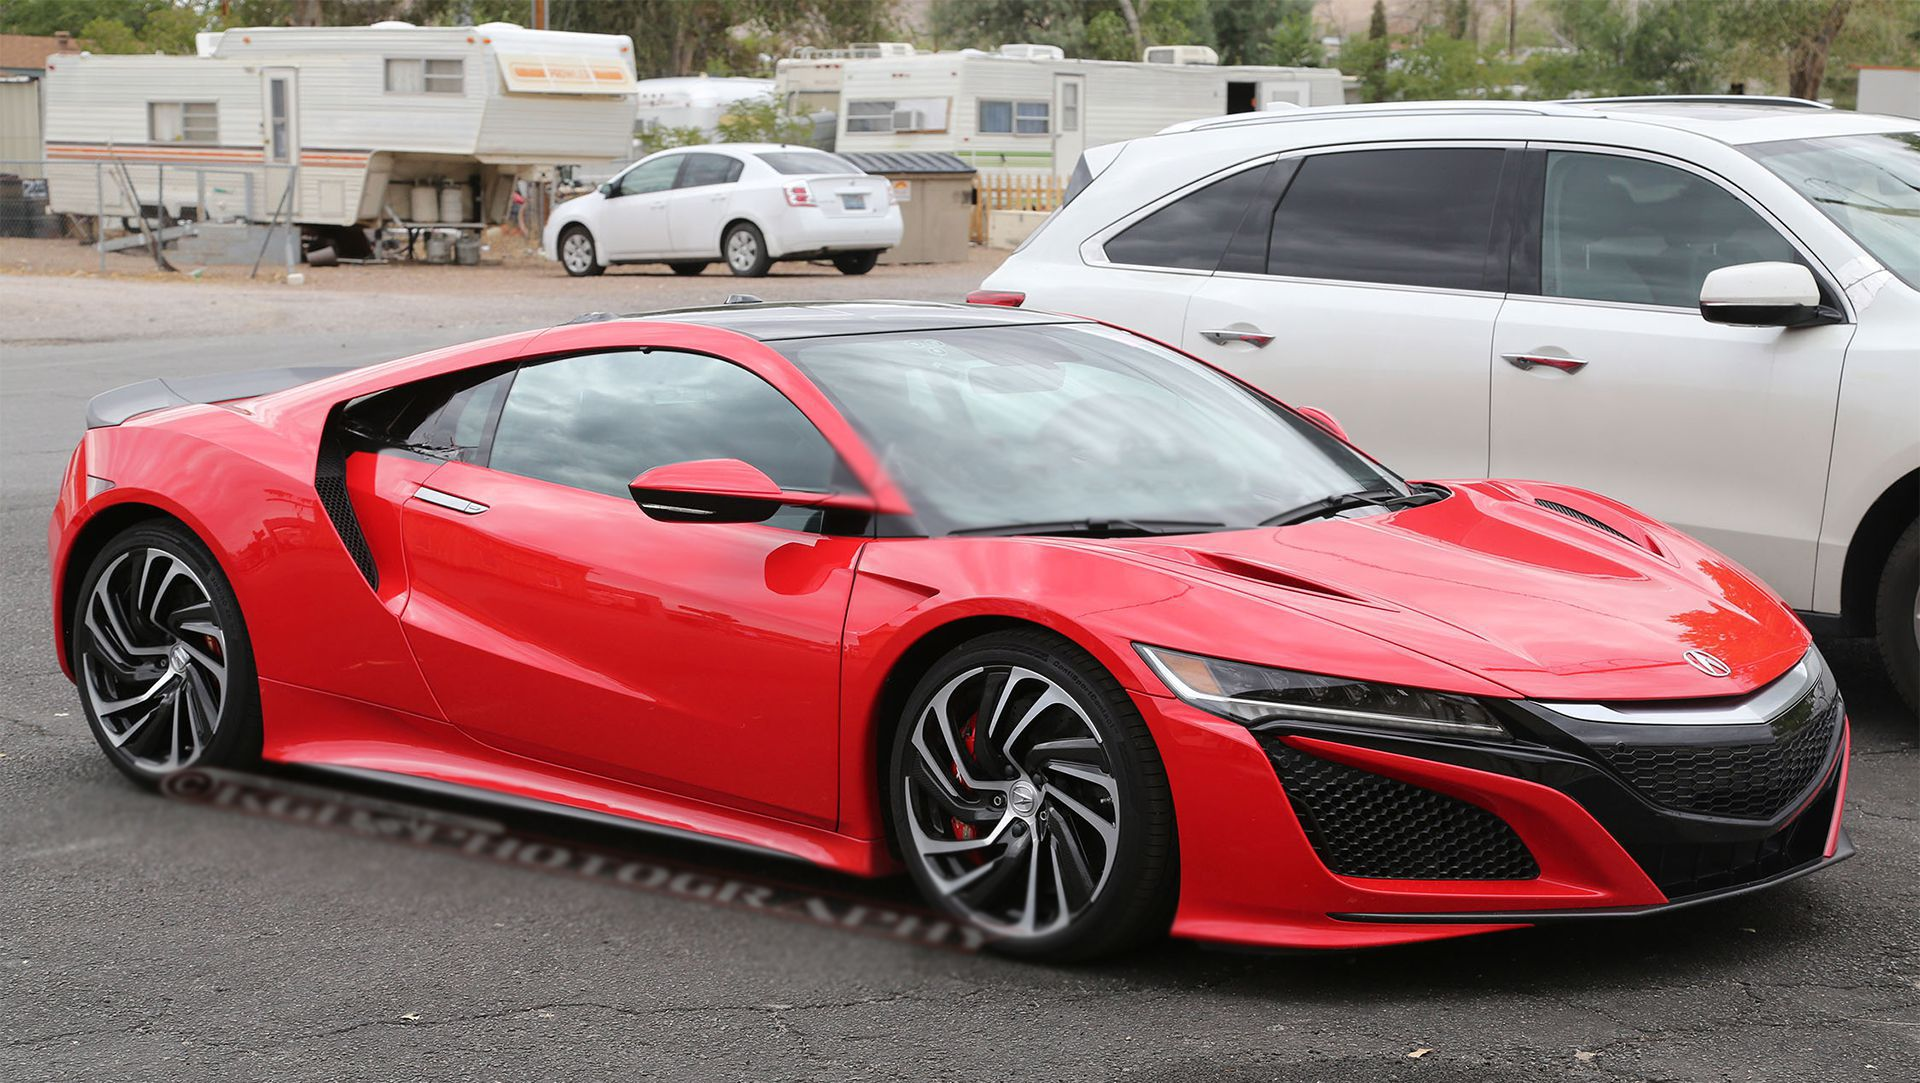 2016 Acura NSX Spied In Production Ready Red The Brand New ...